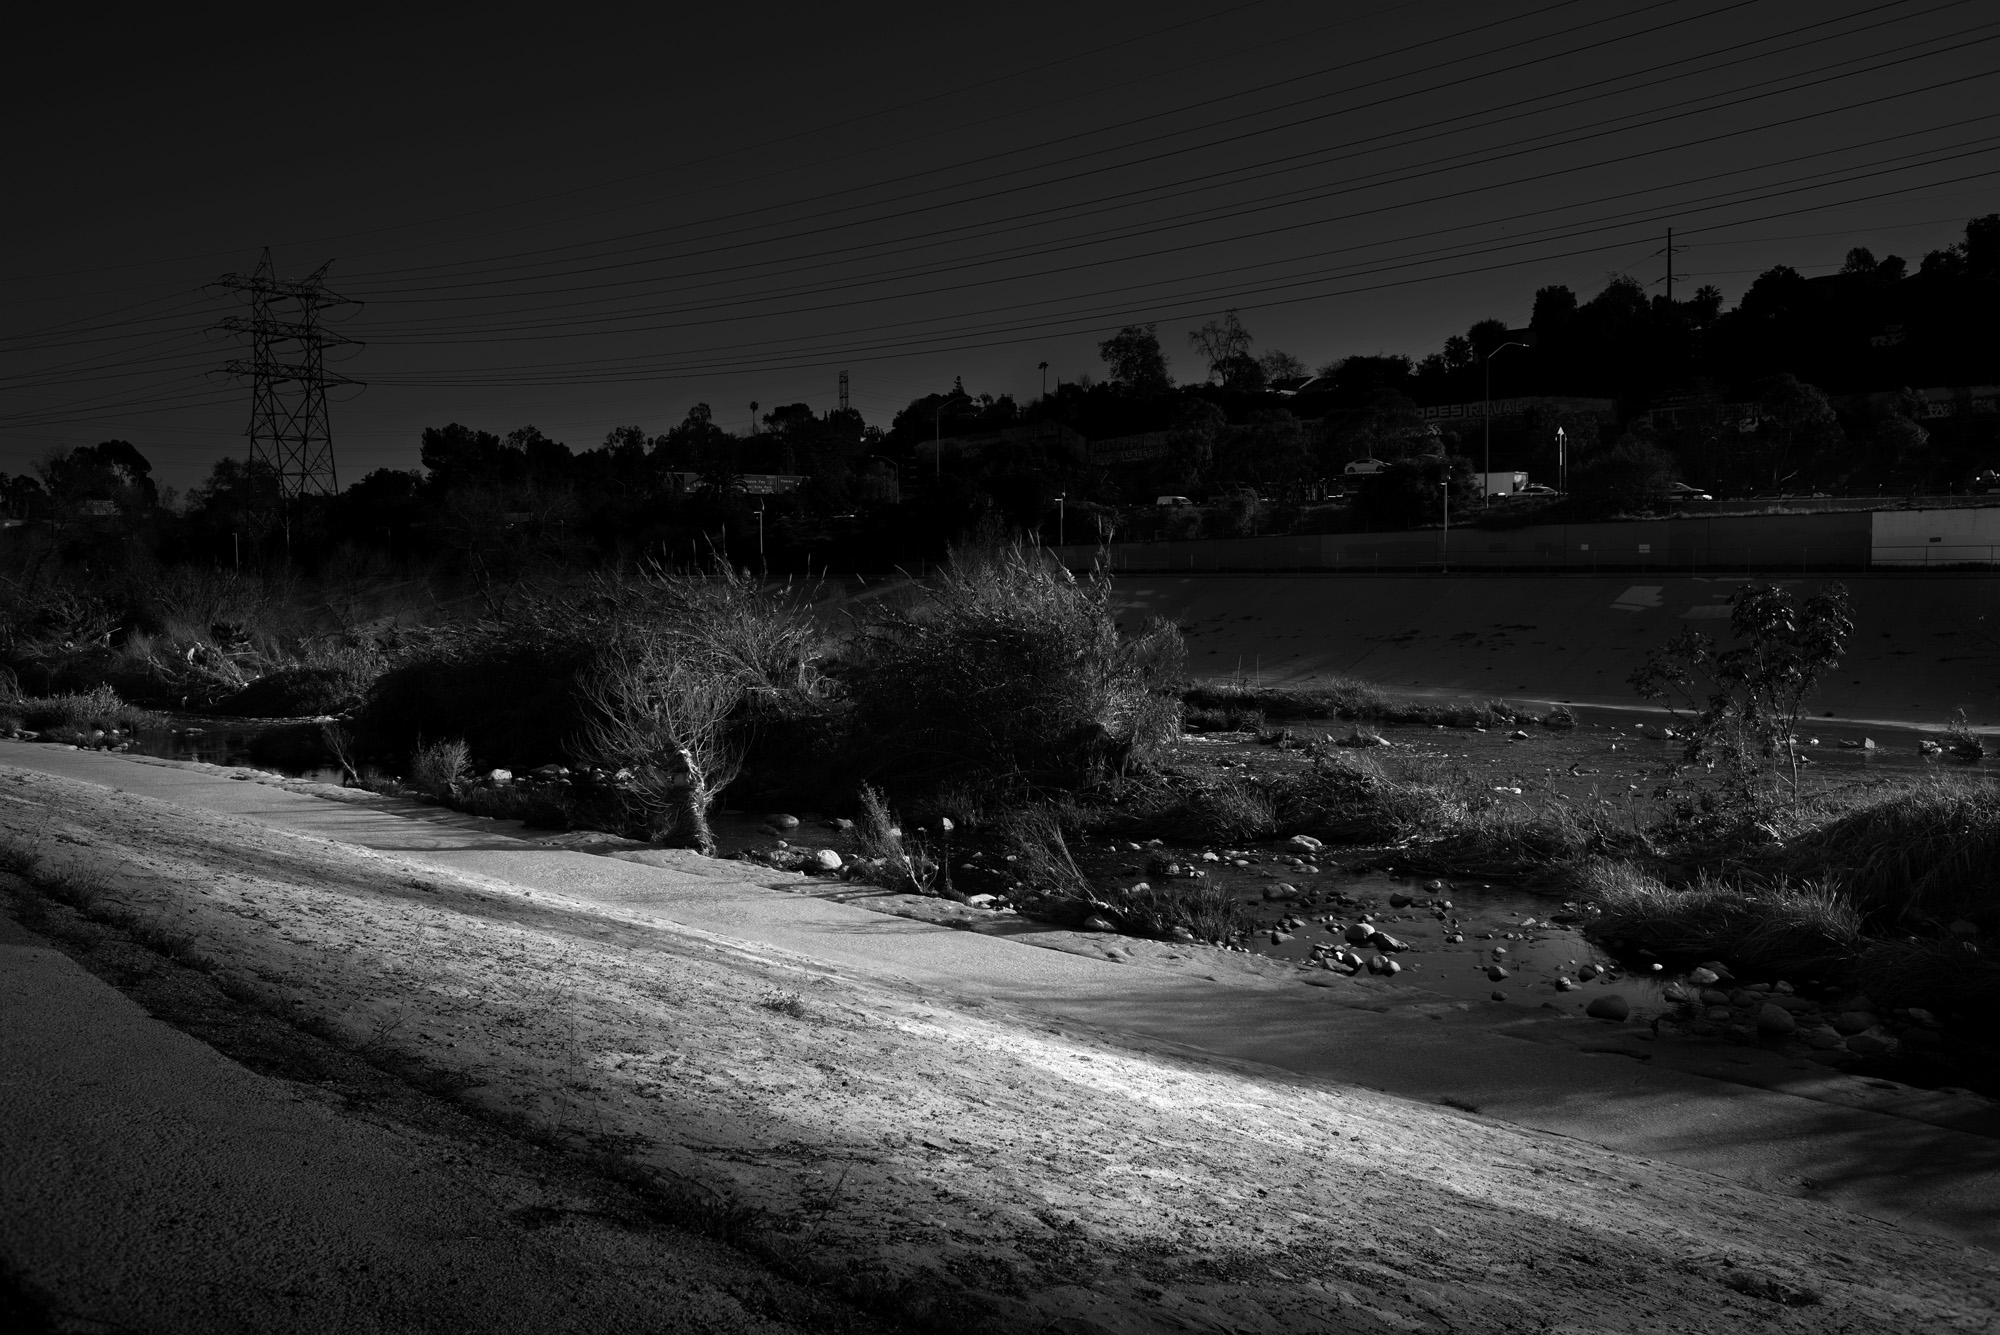 Untitled L.A. River no.2 from LA-LIKE: Day For Night (Sunlight as Spotlight)